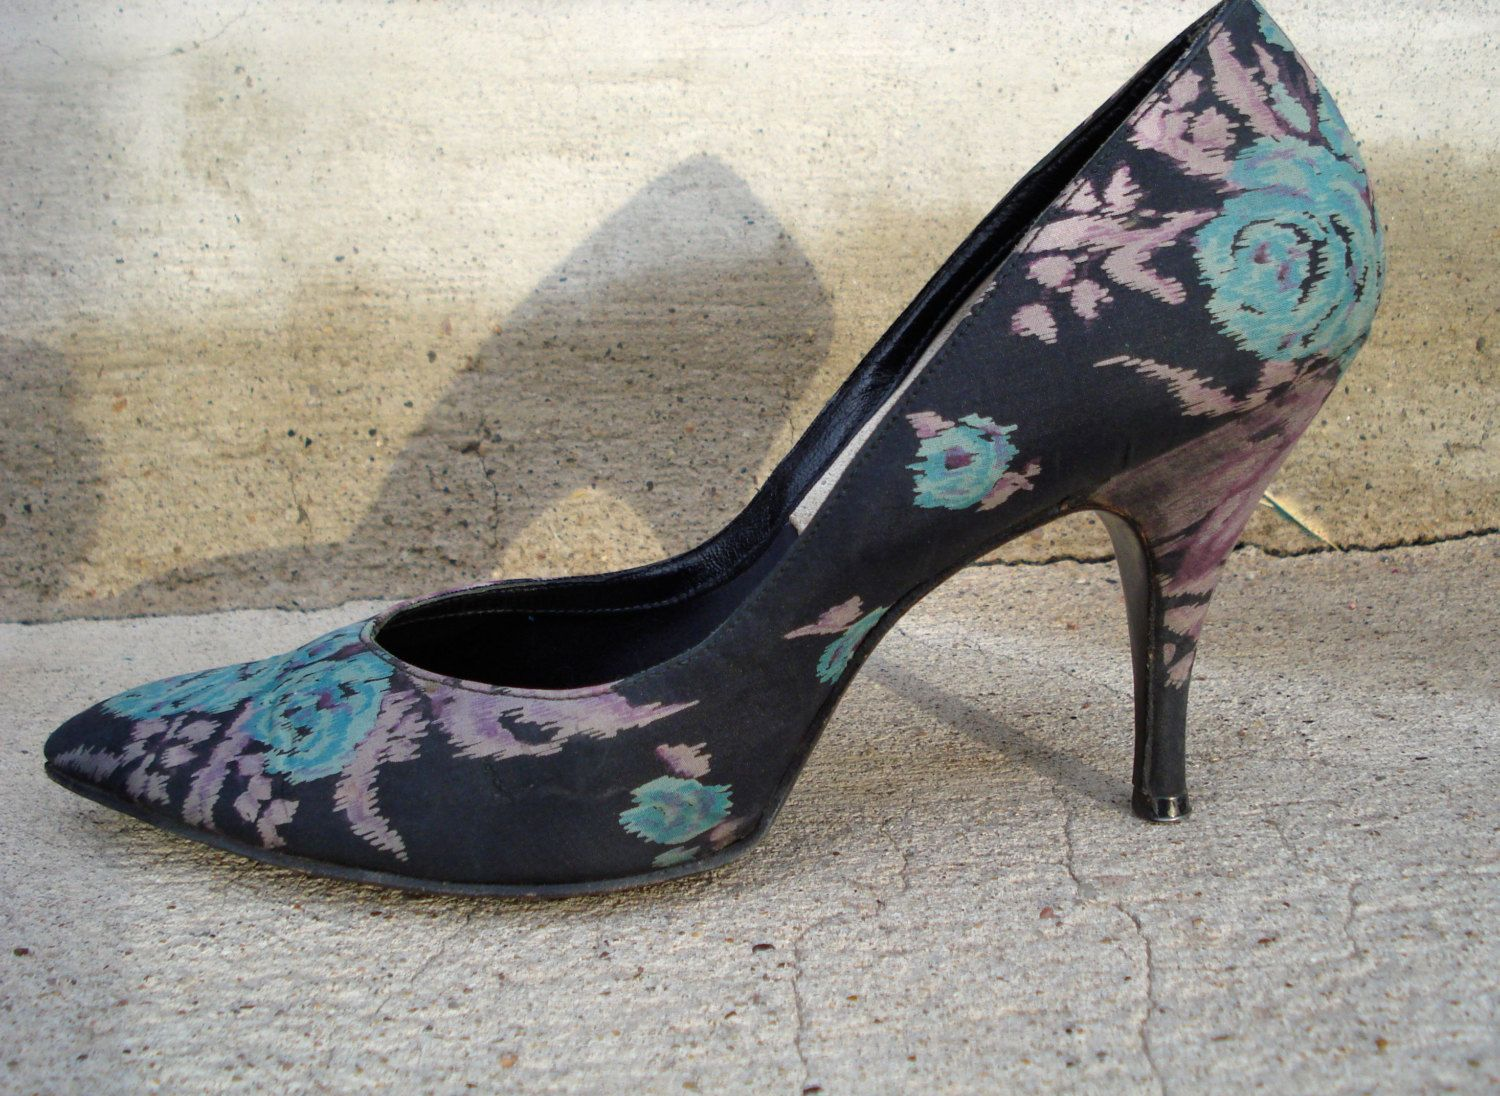 Vintage 1950s Stiletto Shoes Silk Floral Print Size 7 8 2013586 - pinned by pin4etsy.com